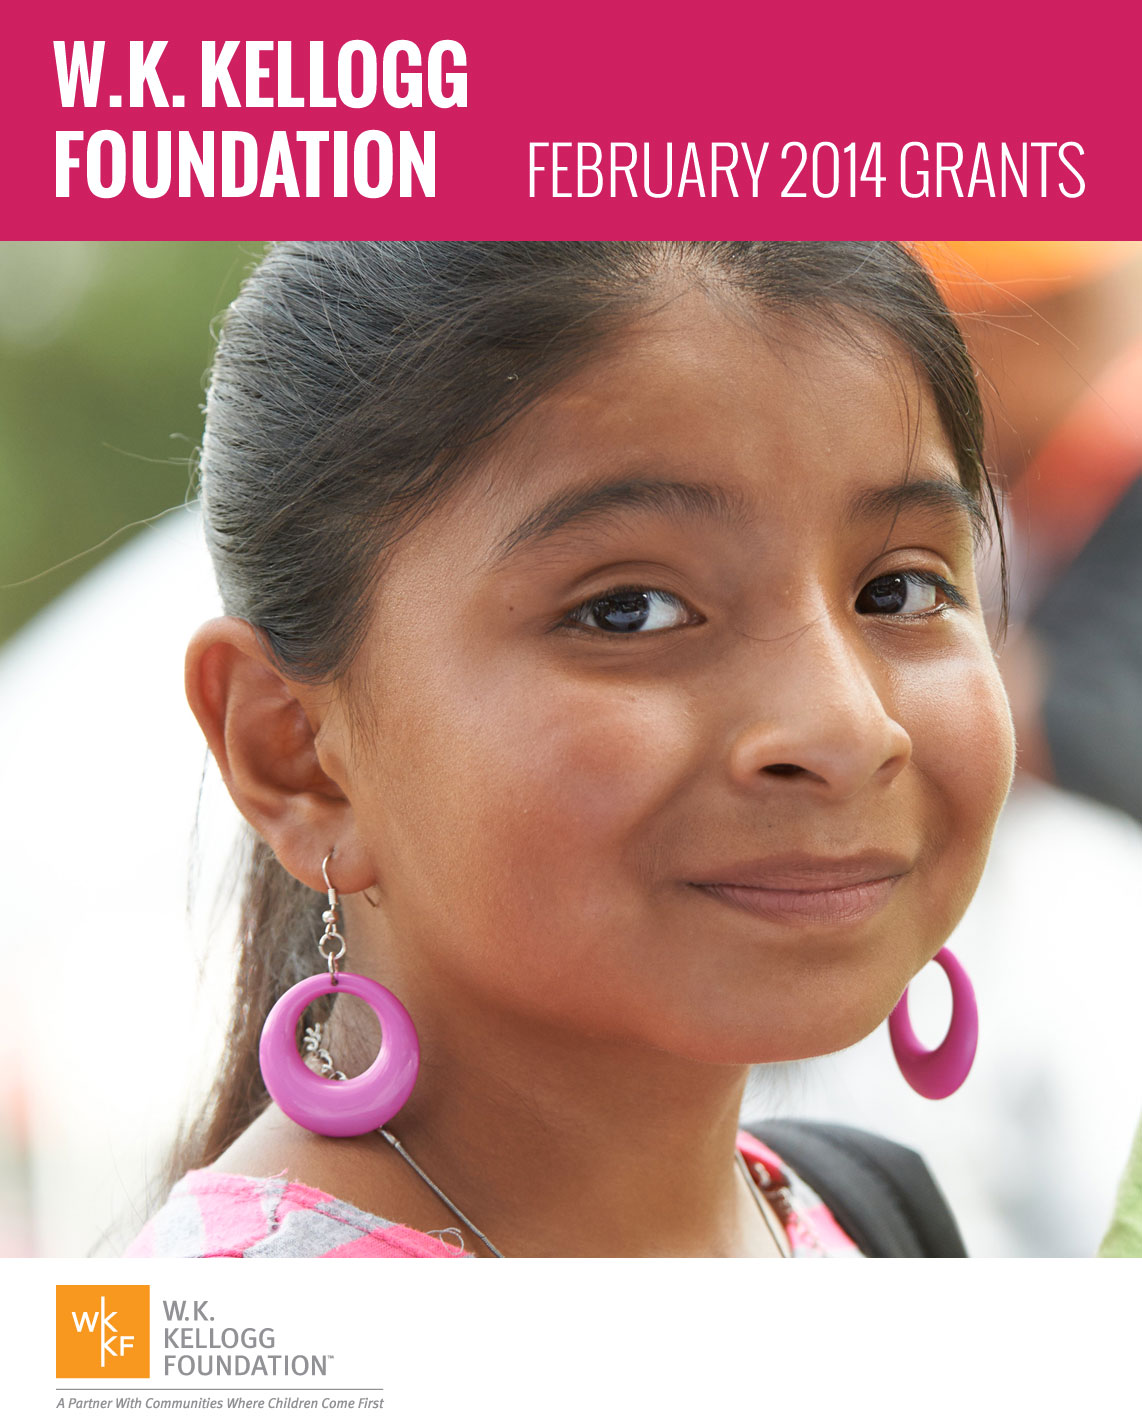 W.K. Kellogg Foundation Grants - February 2014